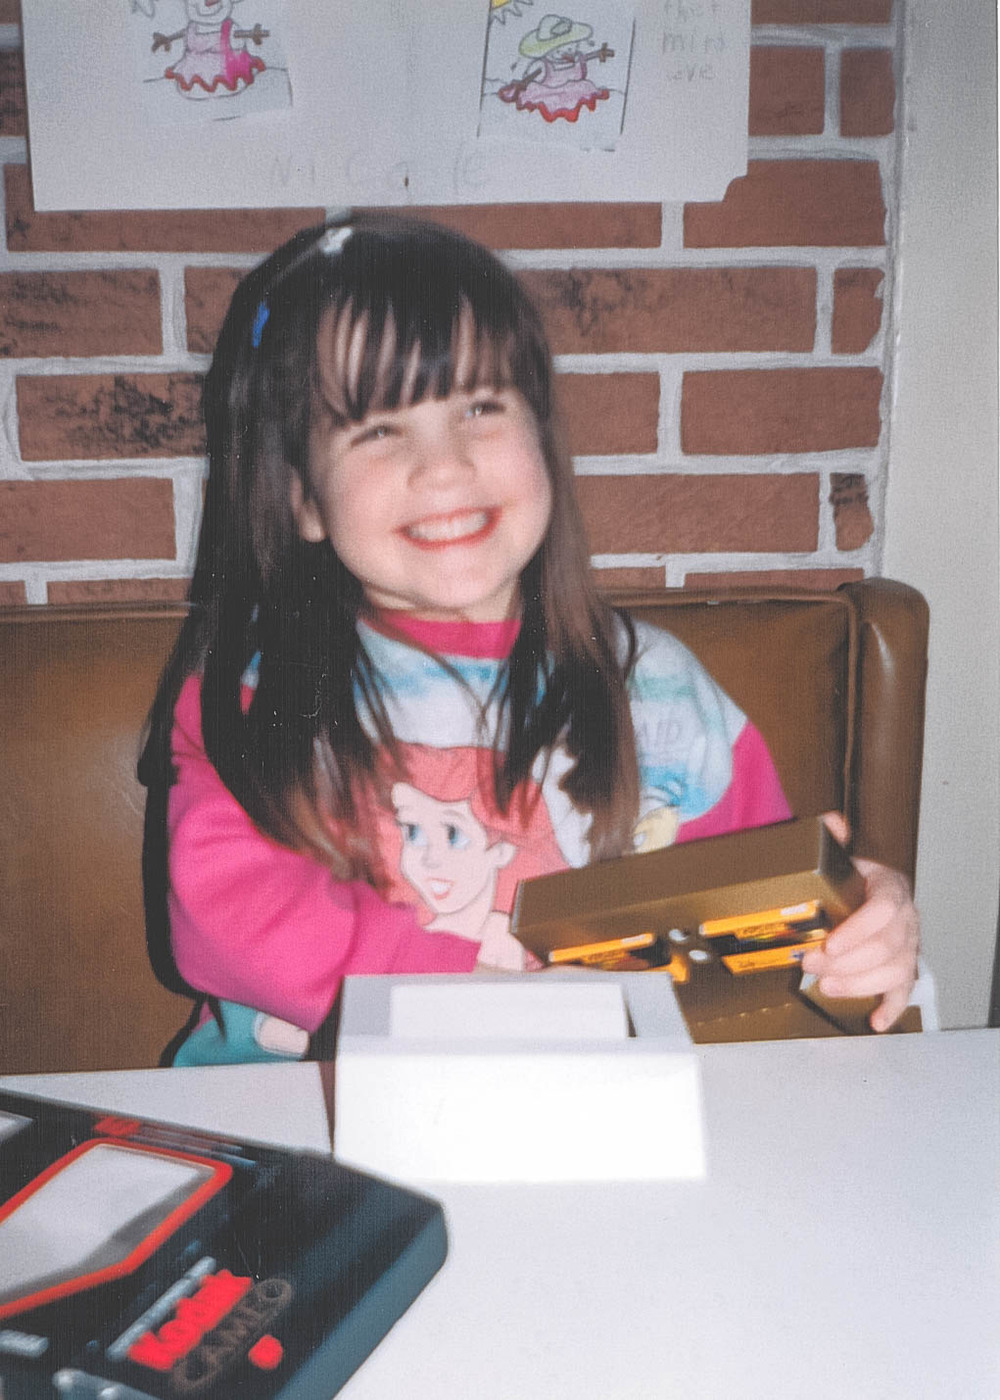 - This is me when I was 4 years old and won my first camera in a colouring contest! It is a Kodak Cameo, and I still have it!